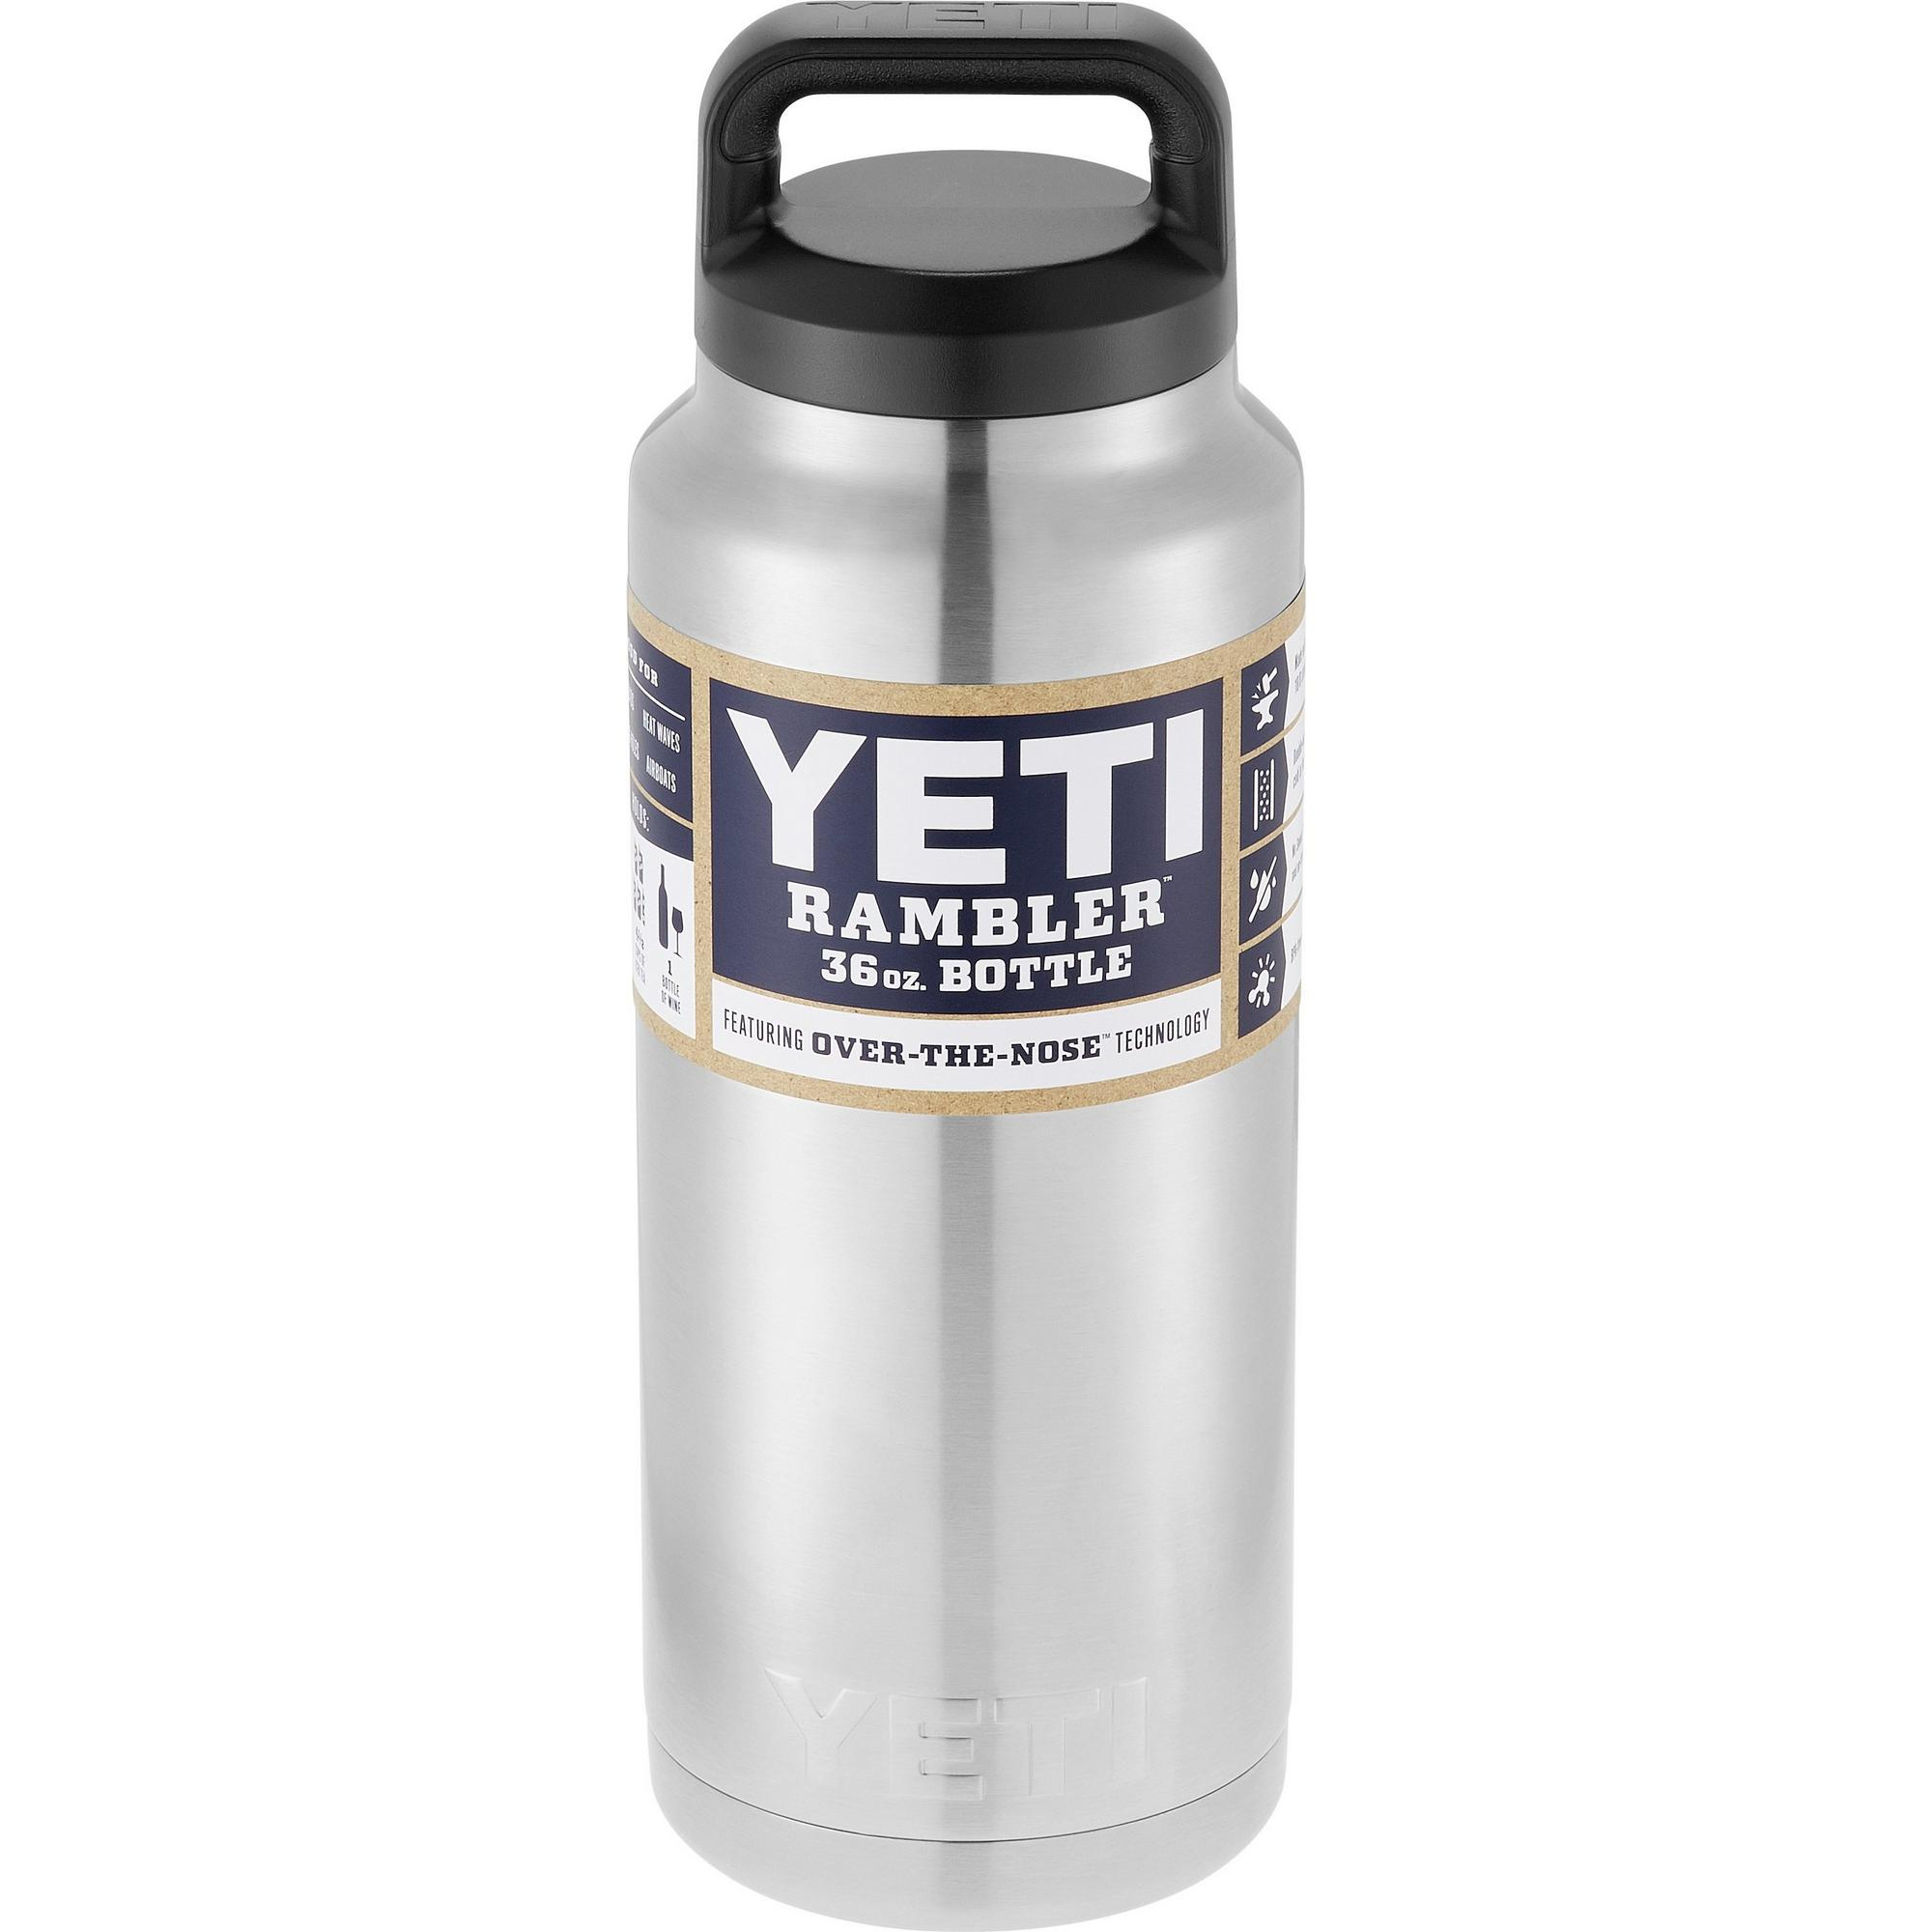 Rambler Bottle - 36 oz.